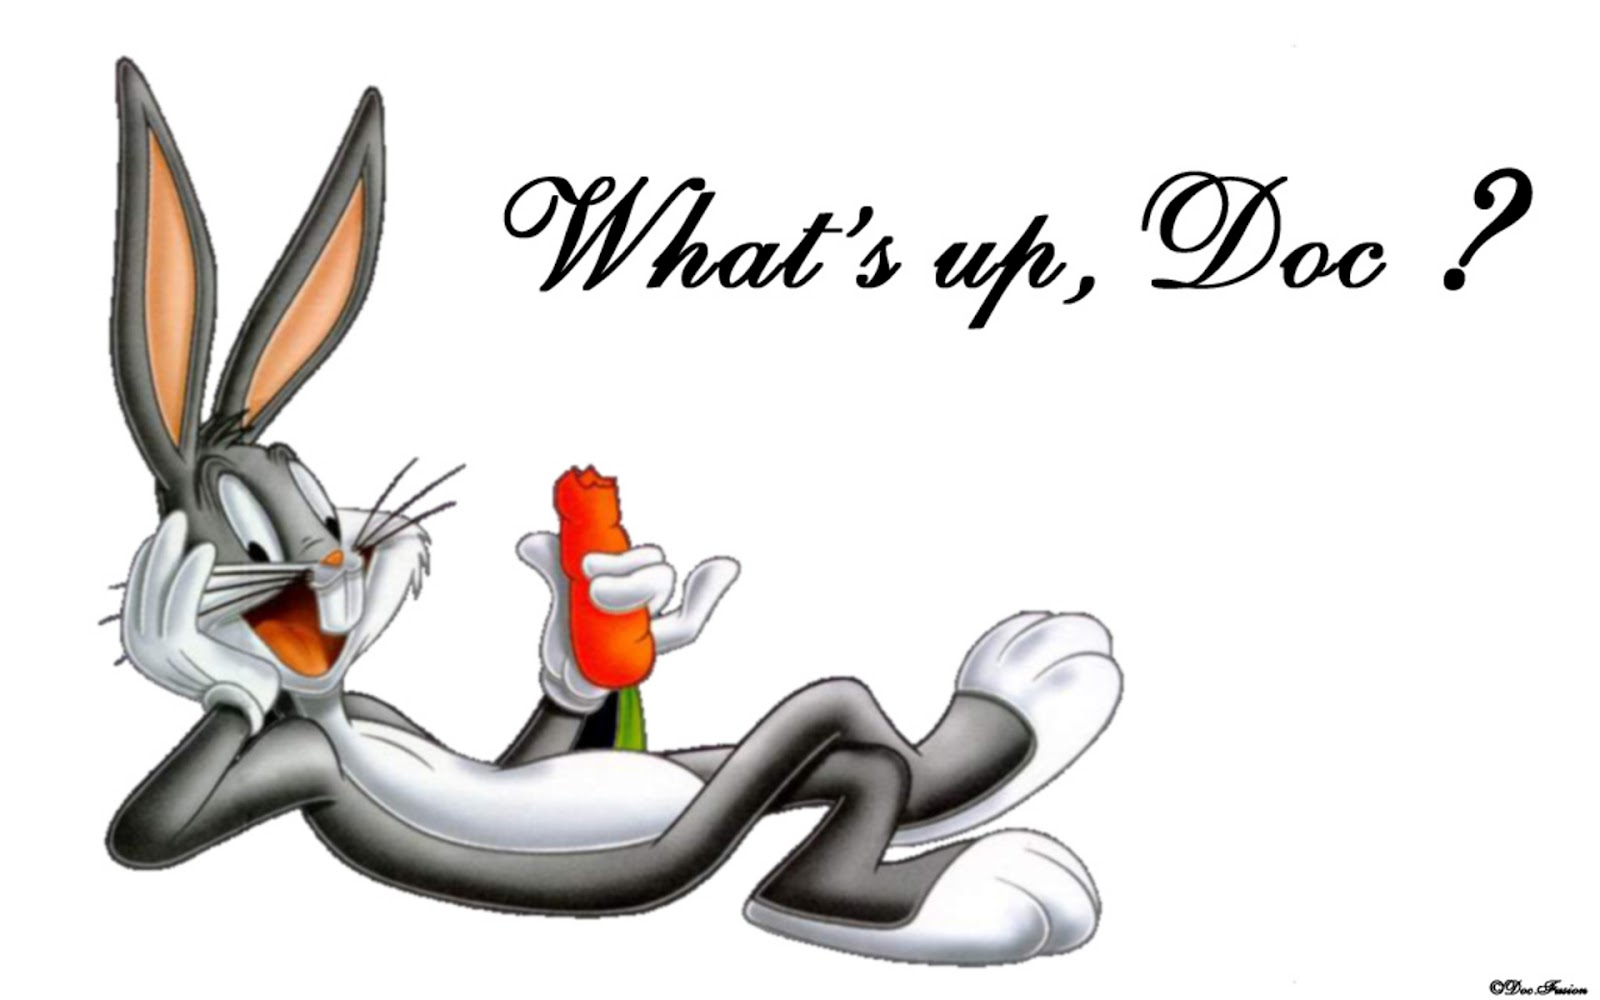 Bugs Bunny Wallpapers on scary backgrounds for desktop